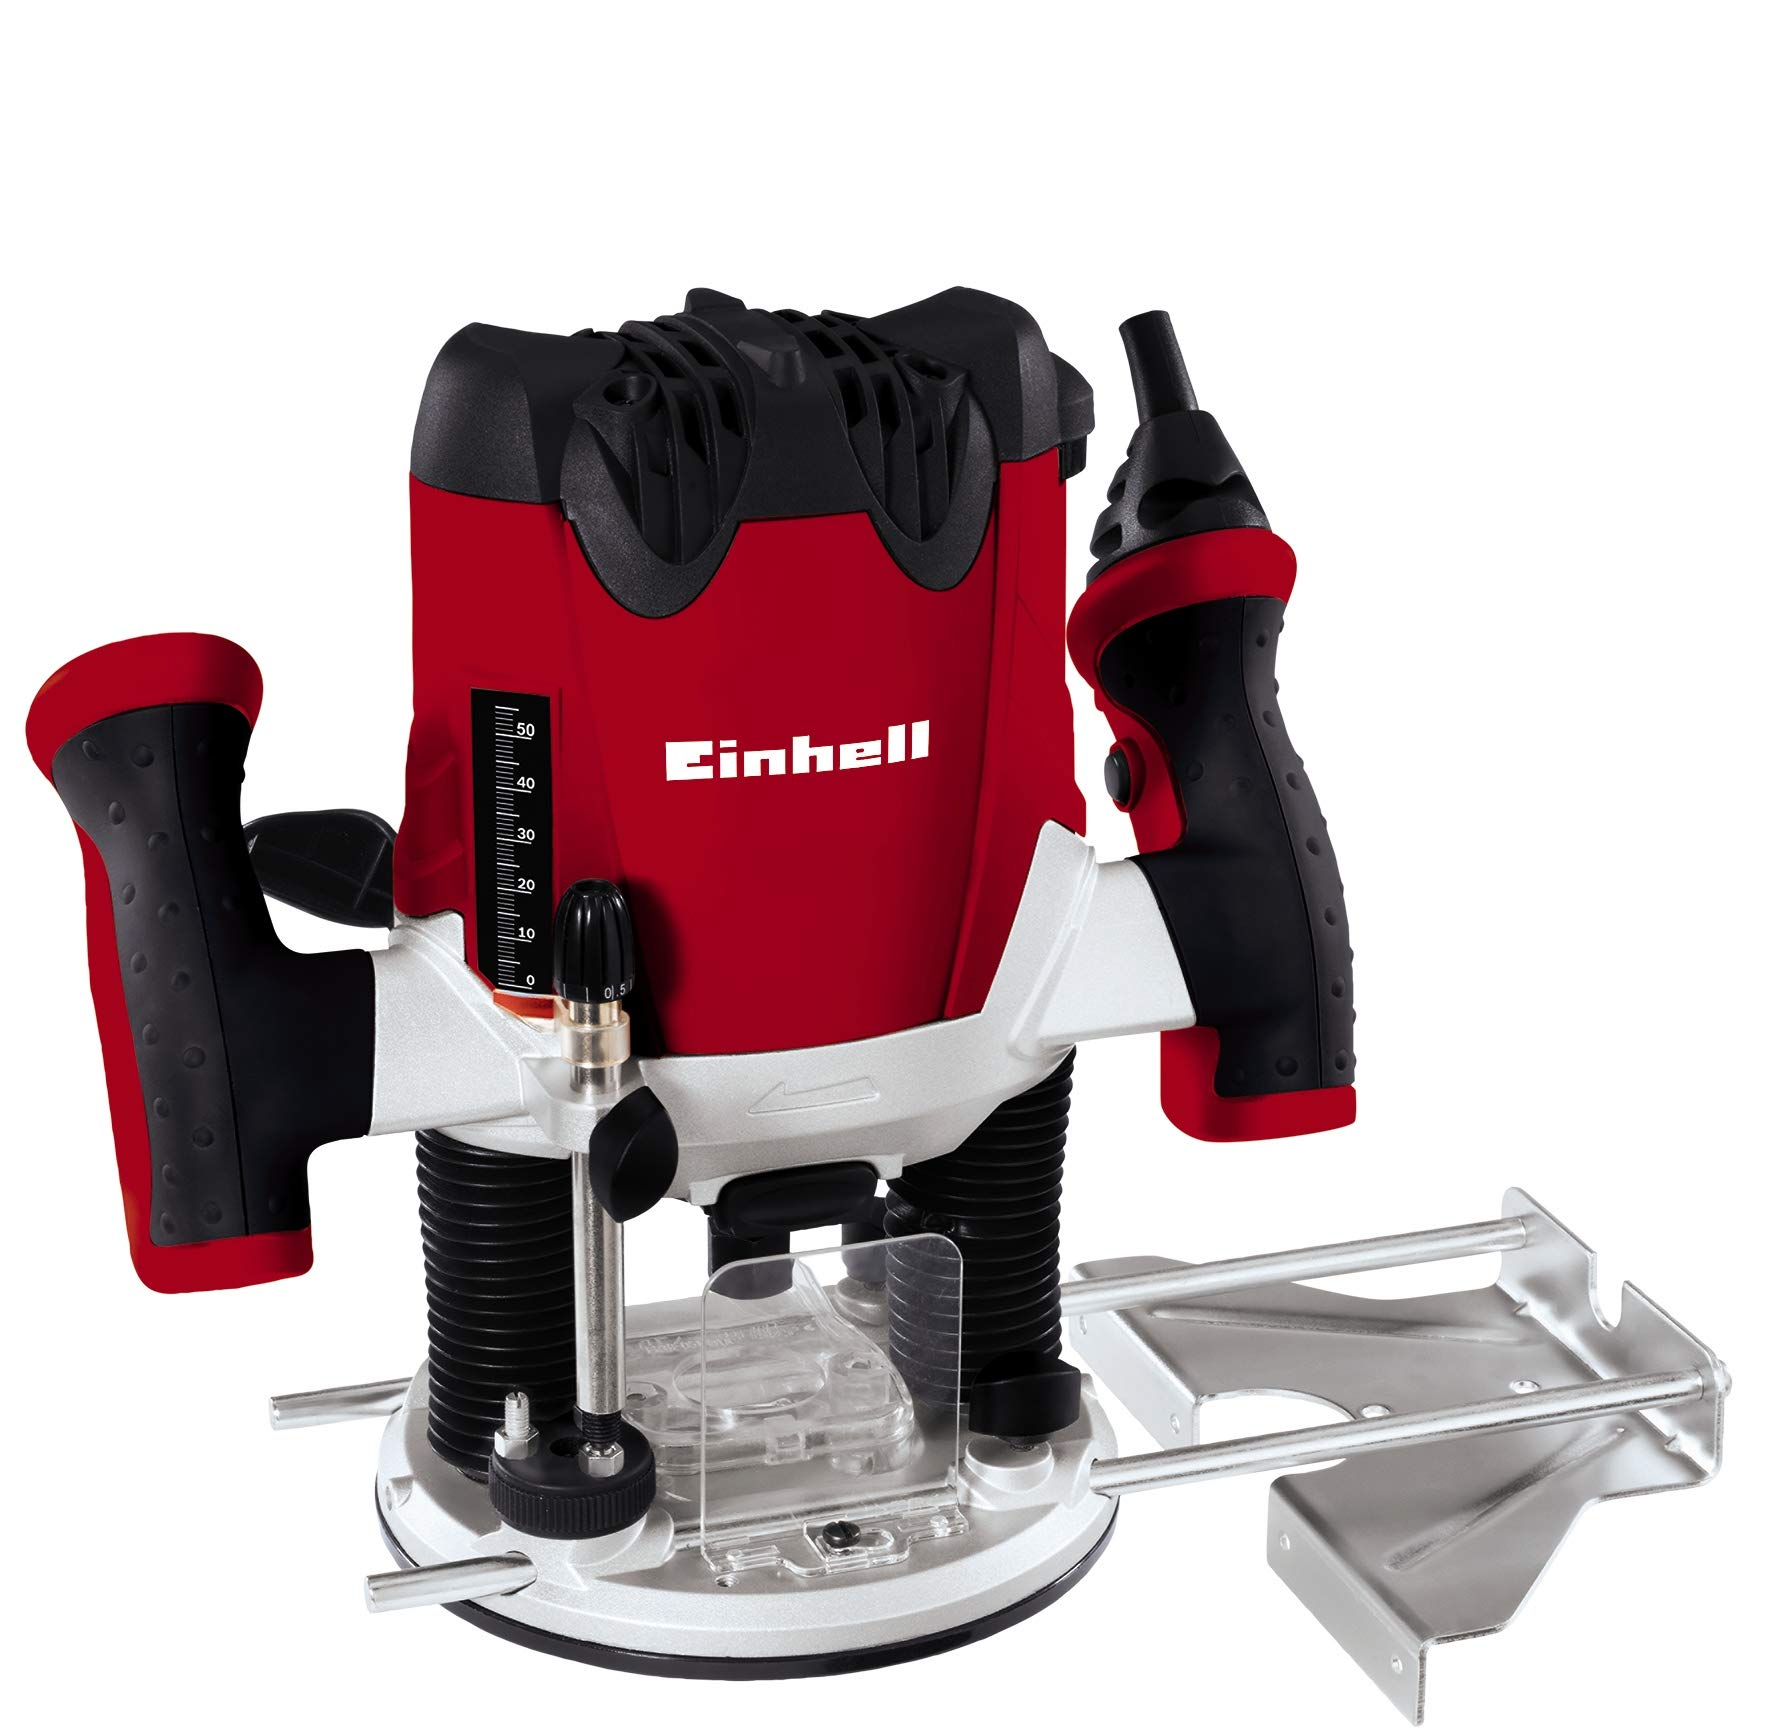 Einhell TE-RO 1255 E 240 V Electronic Router, 1/4 Inch